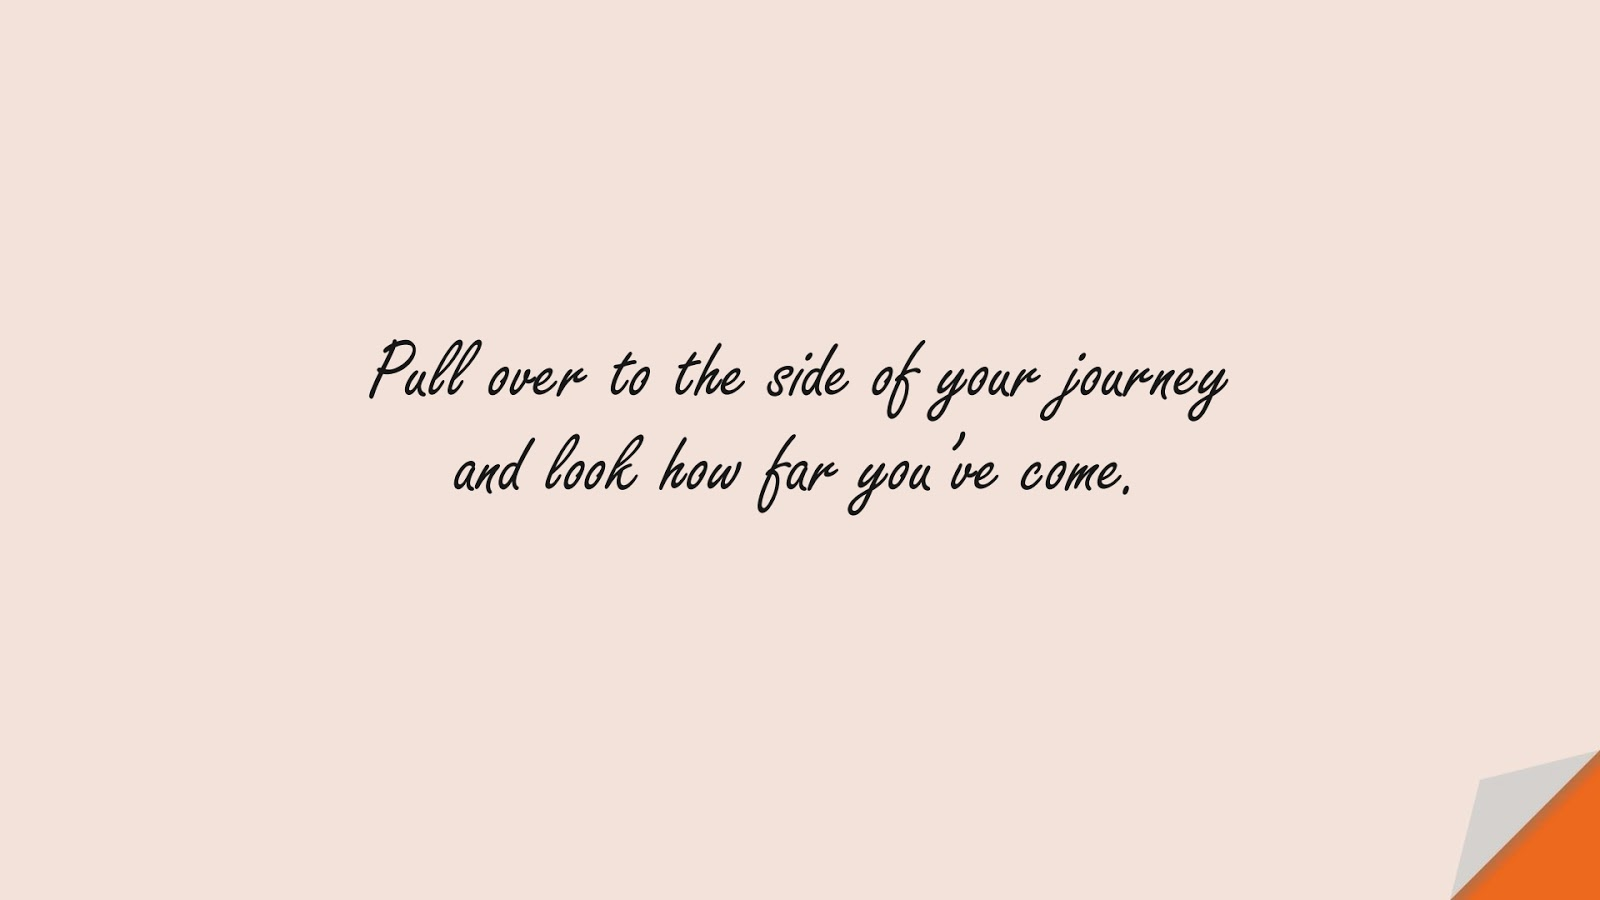 Pull over to the side of your journey and look how far you've come.FALSE